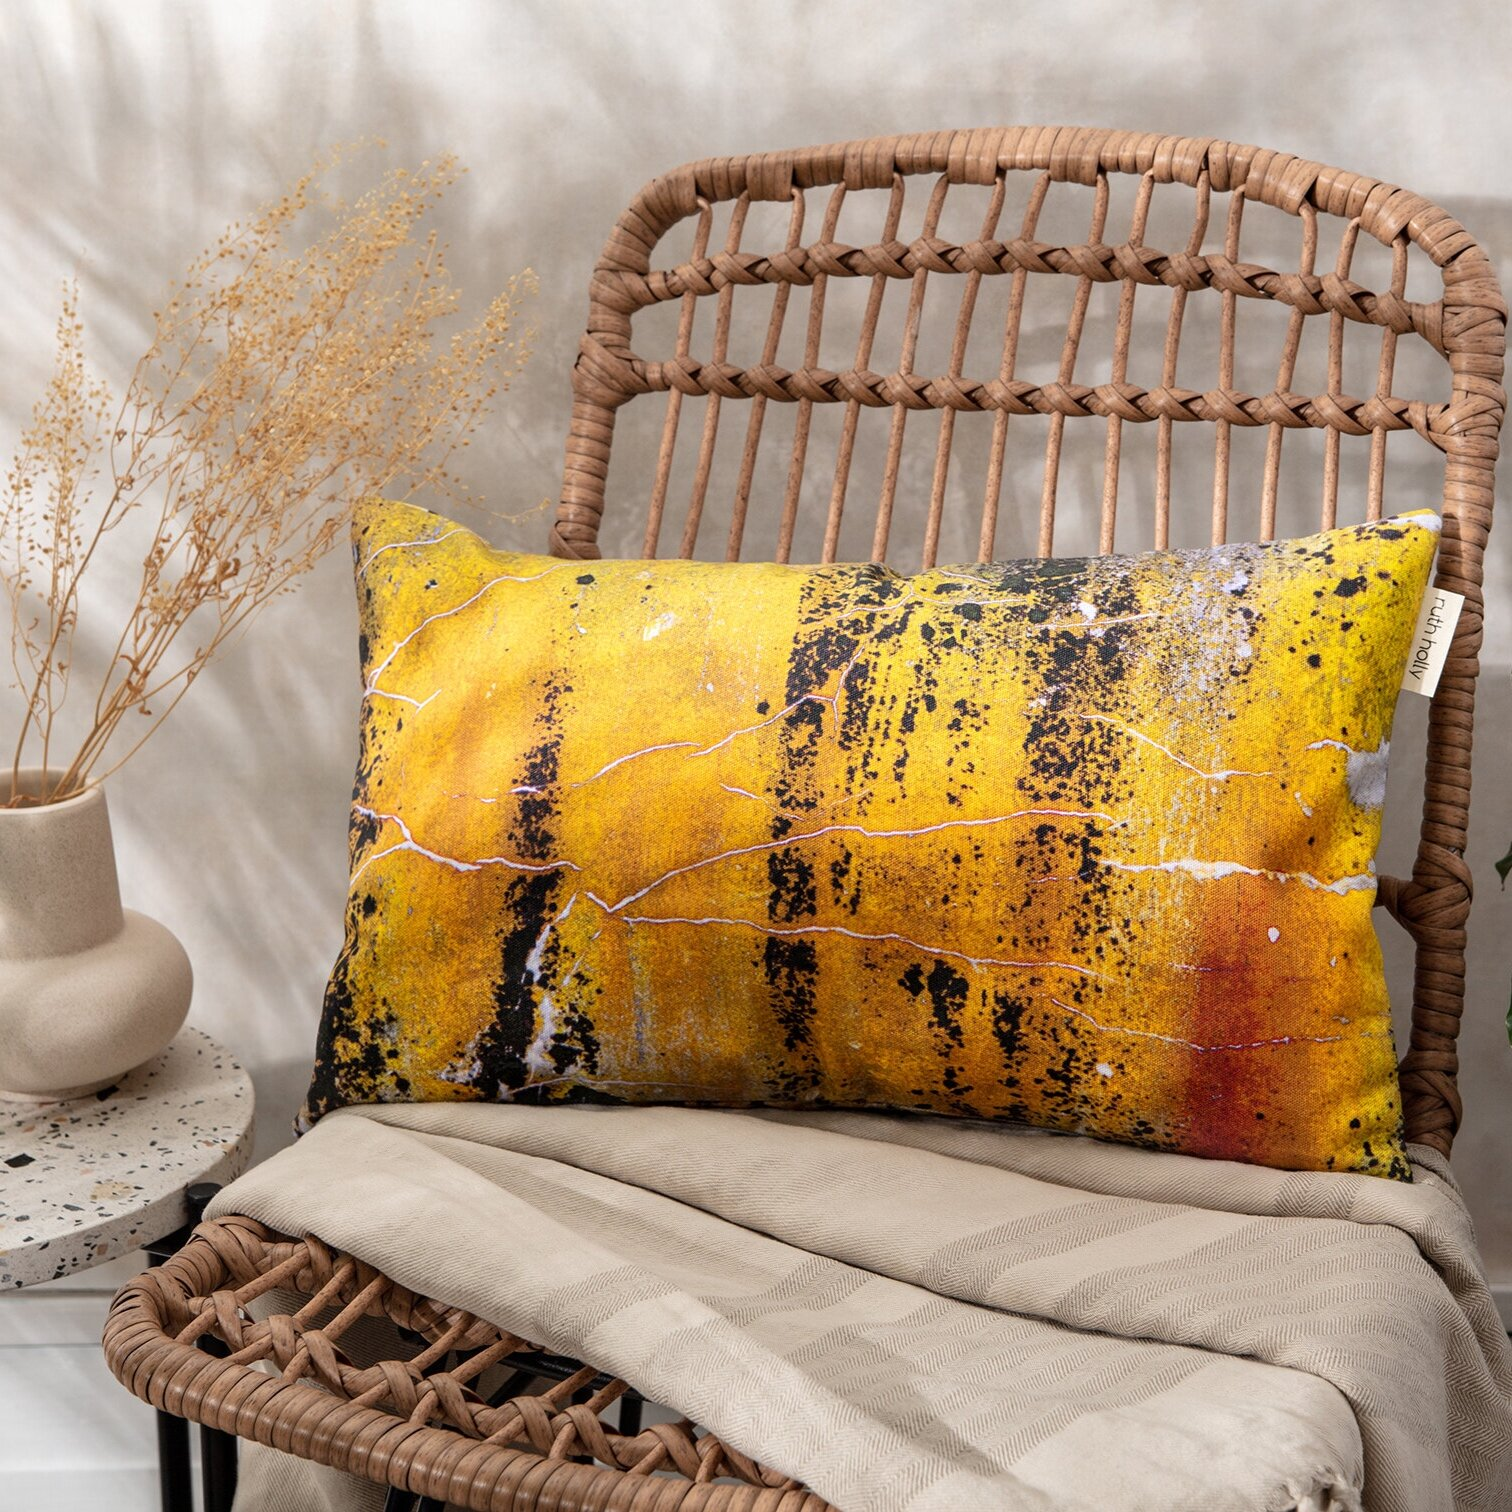 ruth holly baked yellow ochre with charcoal slim cushion nomad texture